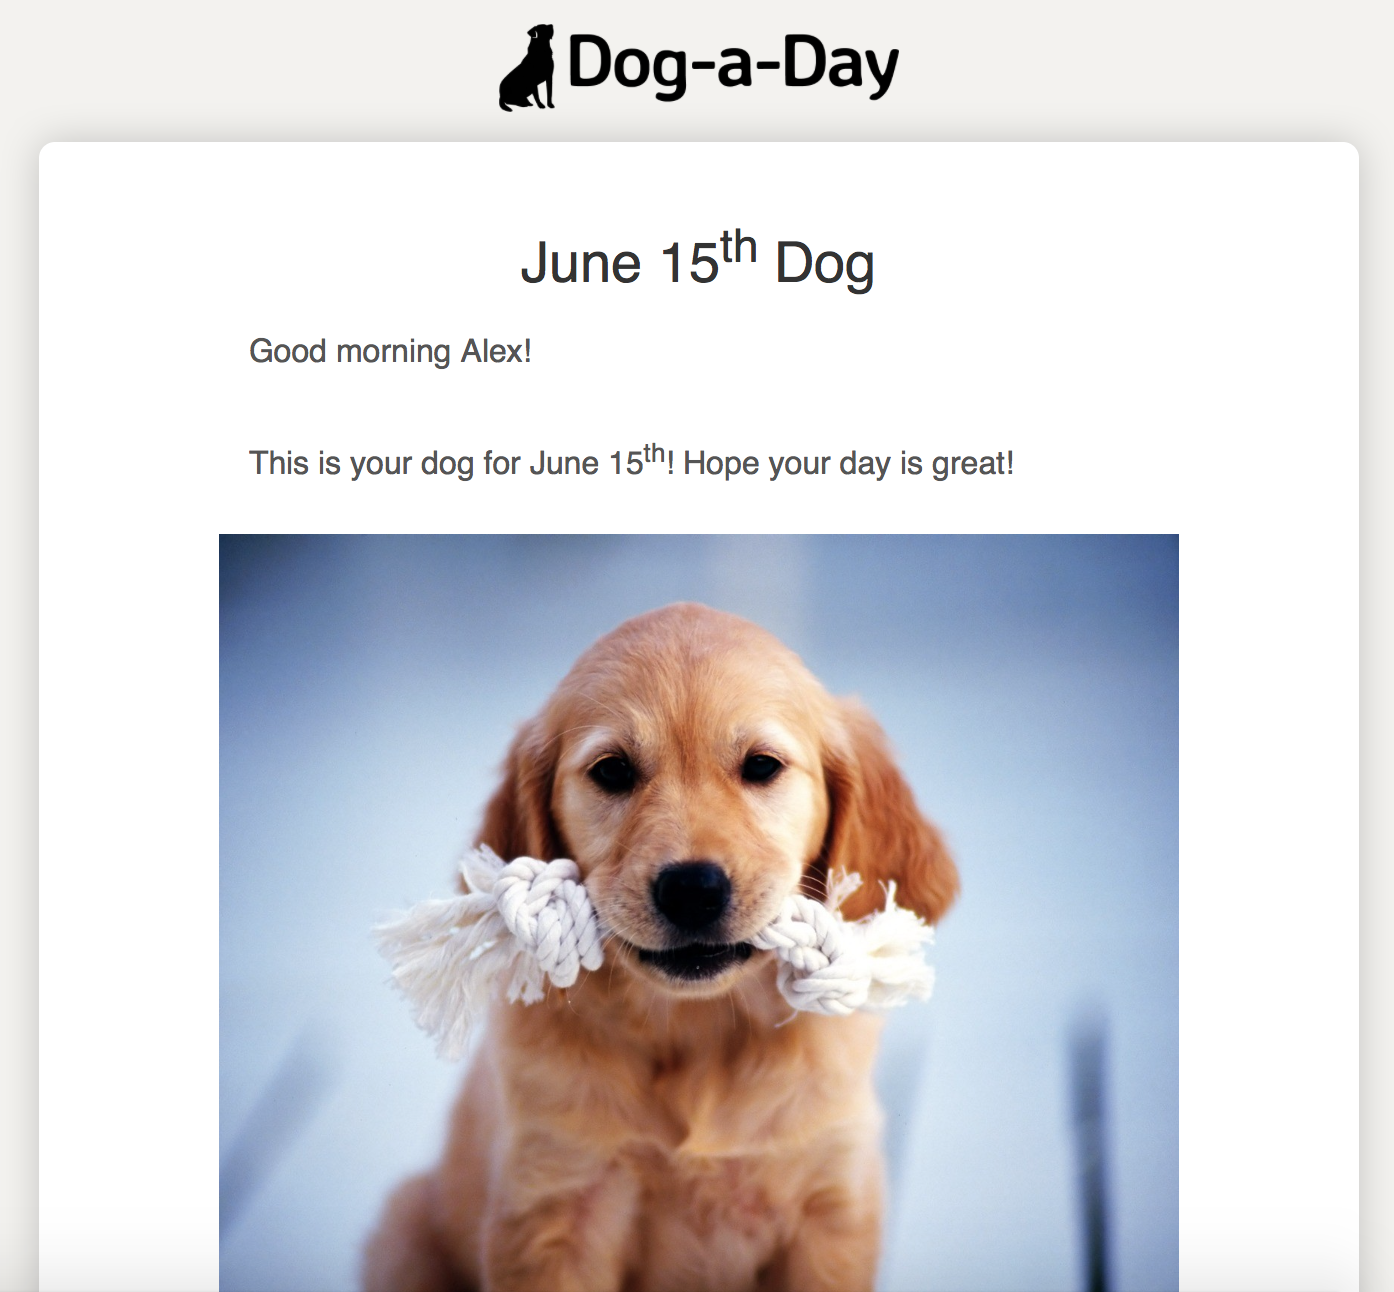 Dog-a-Day Email